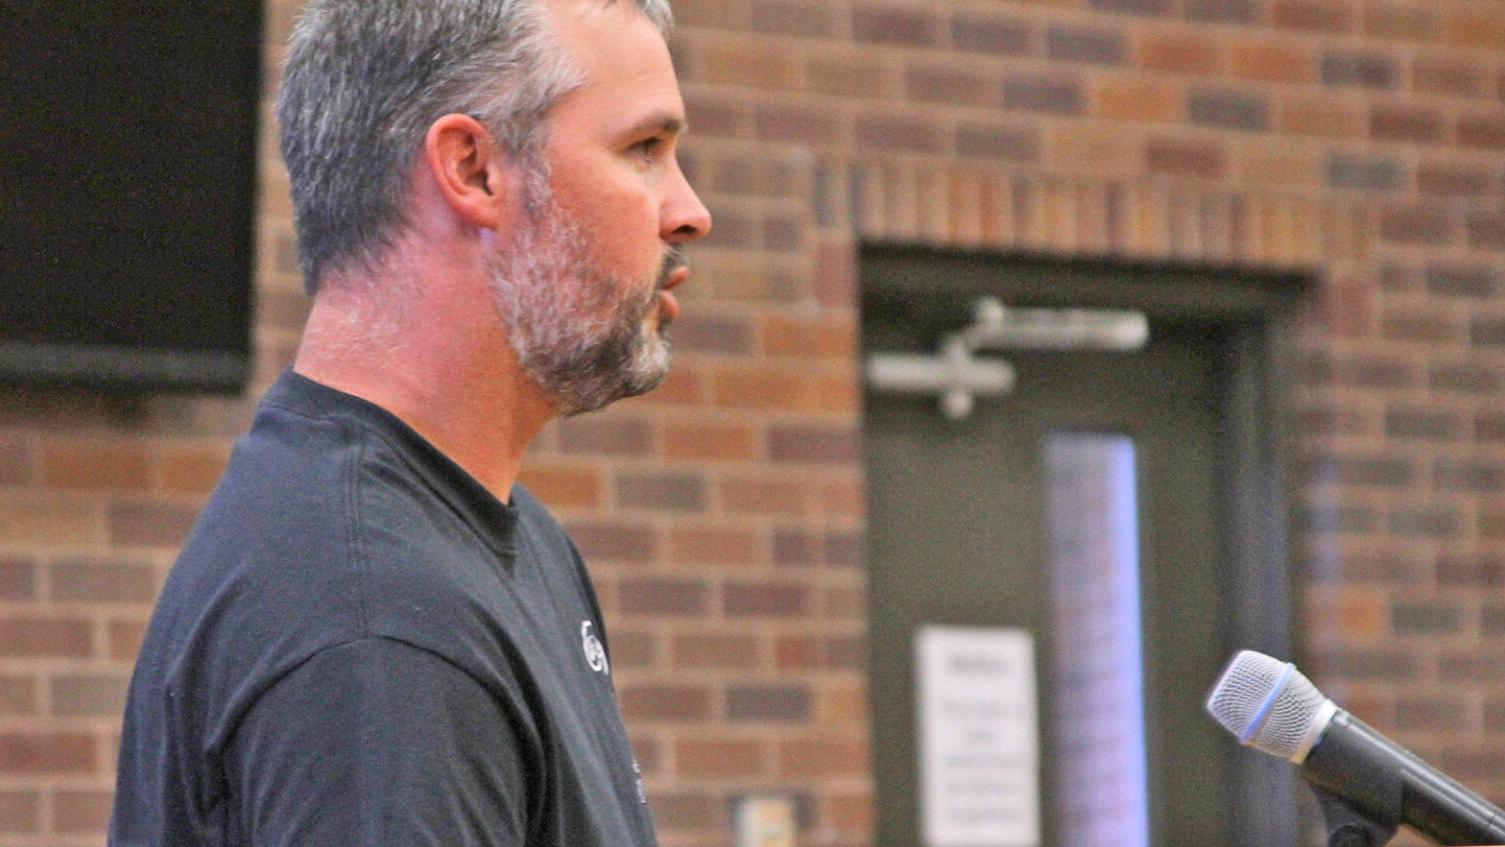 Gering City Council pushes through utility hikes